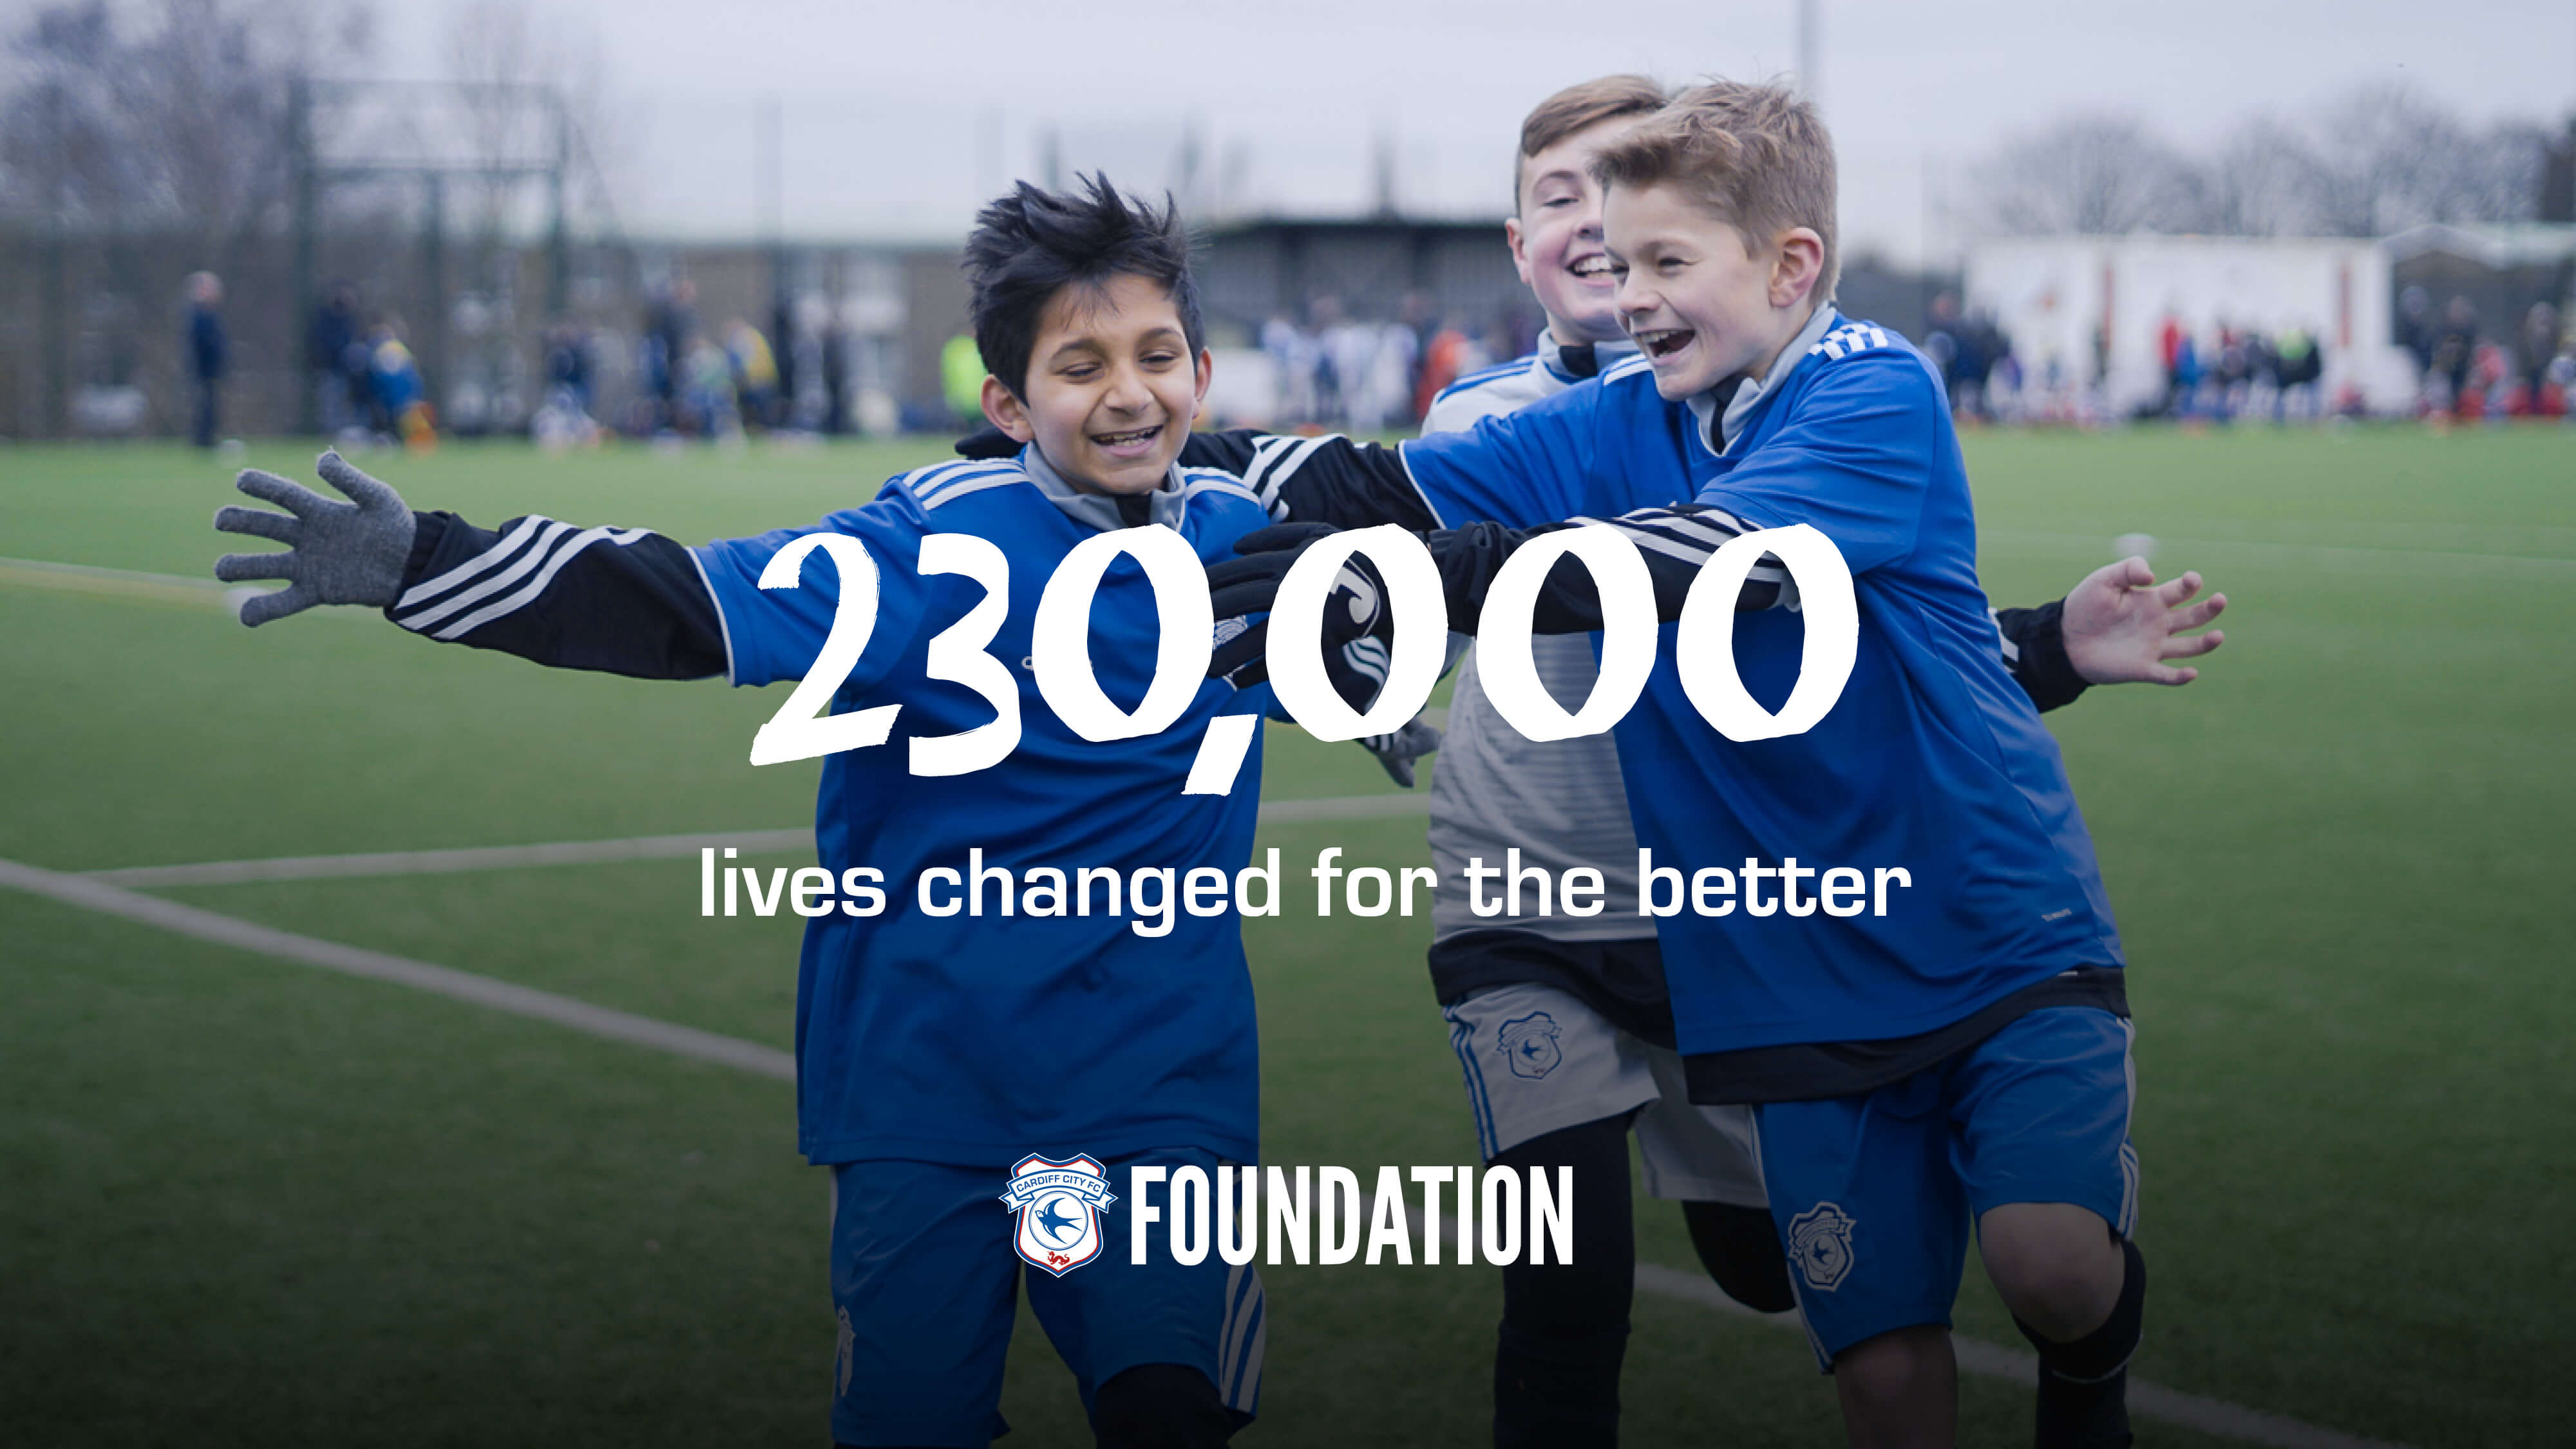 230,000 lives changed by CCFC